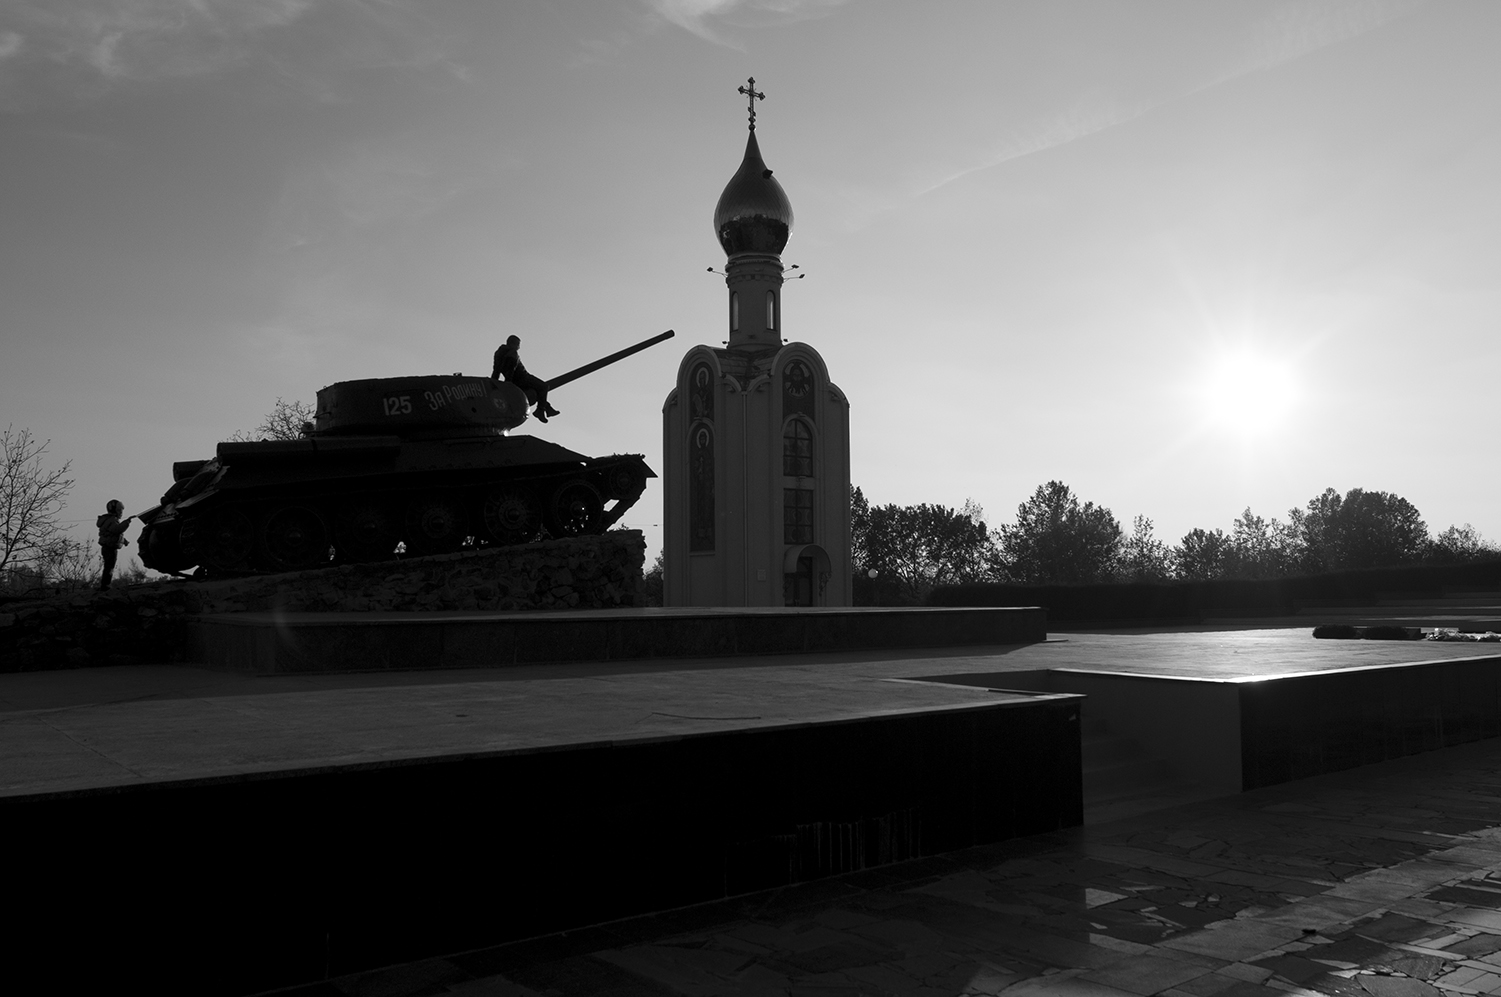 Kids playing on a T-34, memorial for World War Two.